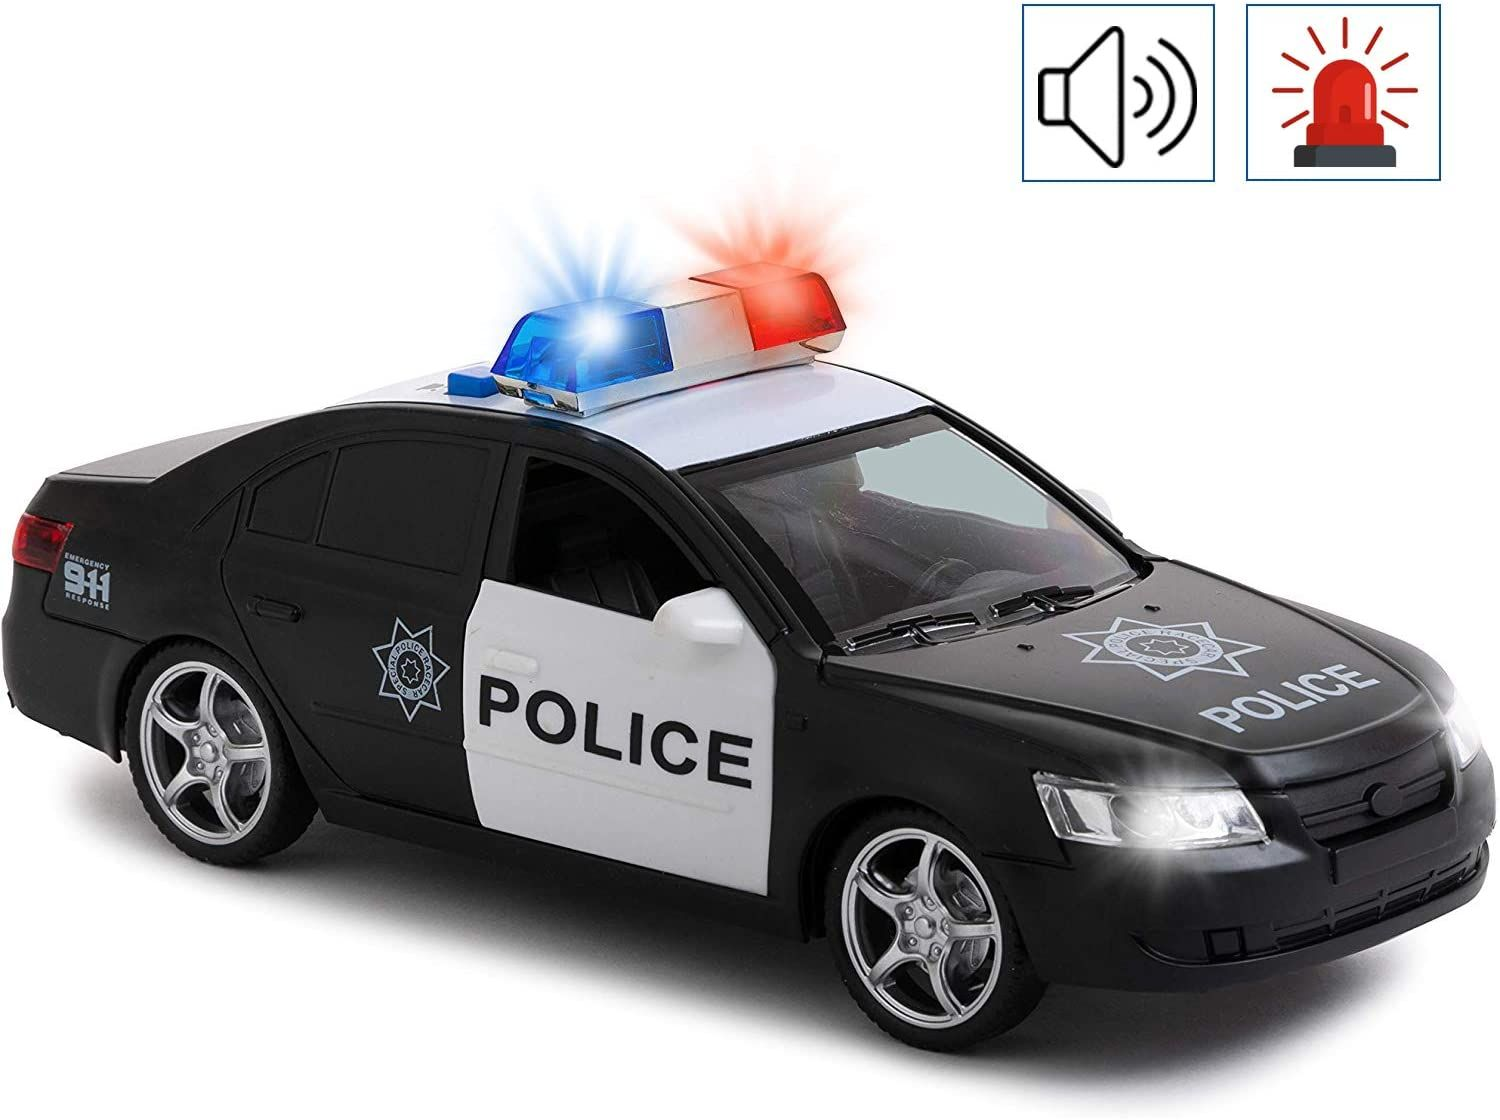 Toy To Enjoy Friction Powered Police Car With Light Sounds Heavy Duty Plastic Vehicle Toy For Kids Children Ope In 2021 Toy Police Cars Police Cars Police Toys